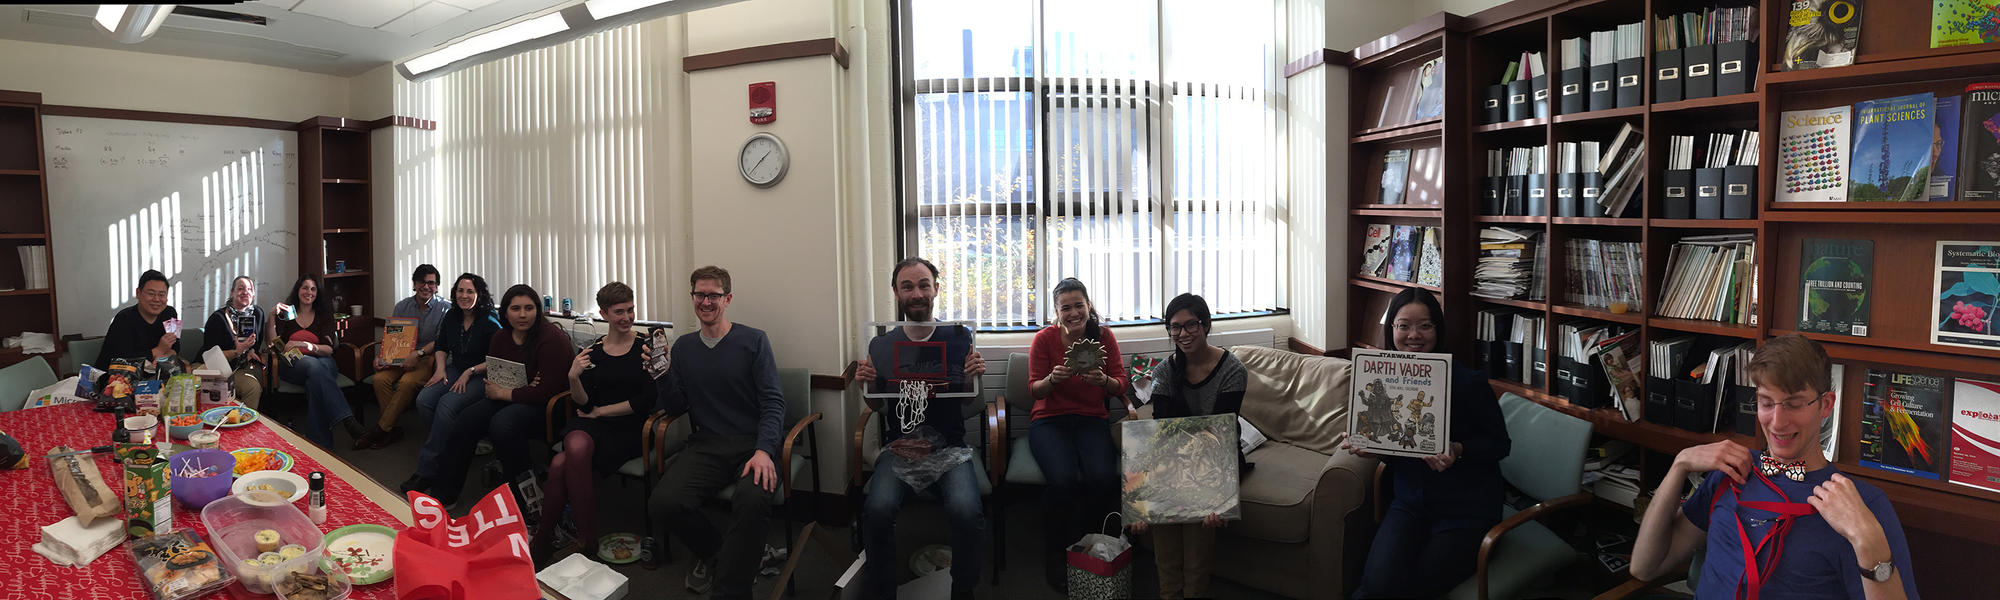 Kramer Lab holiday party 2015